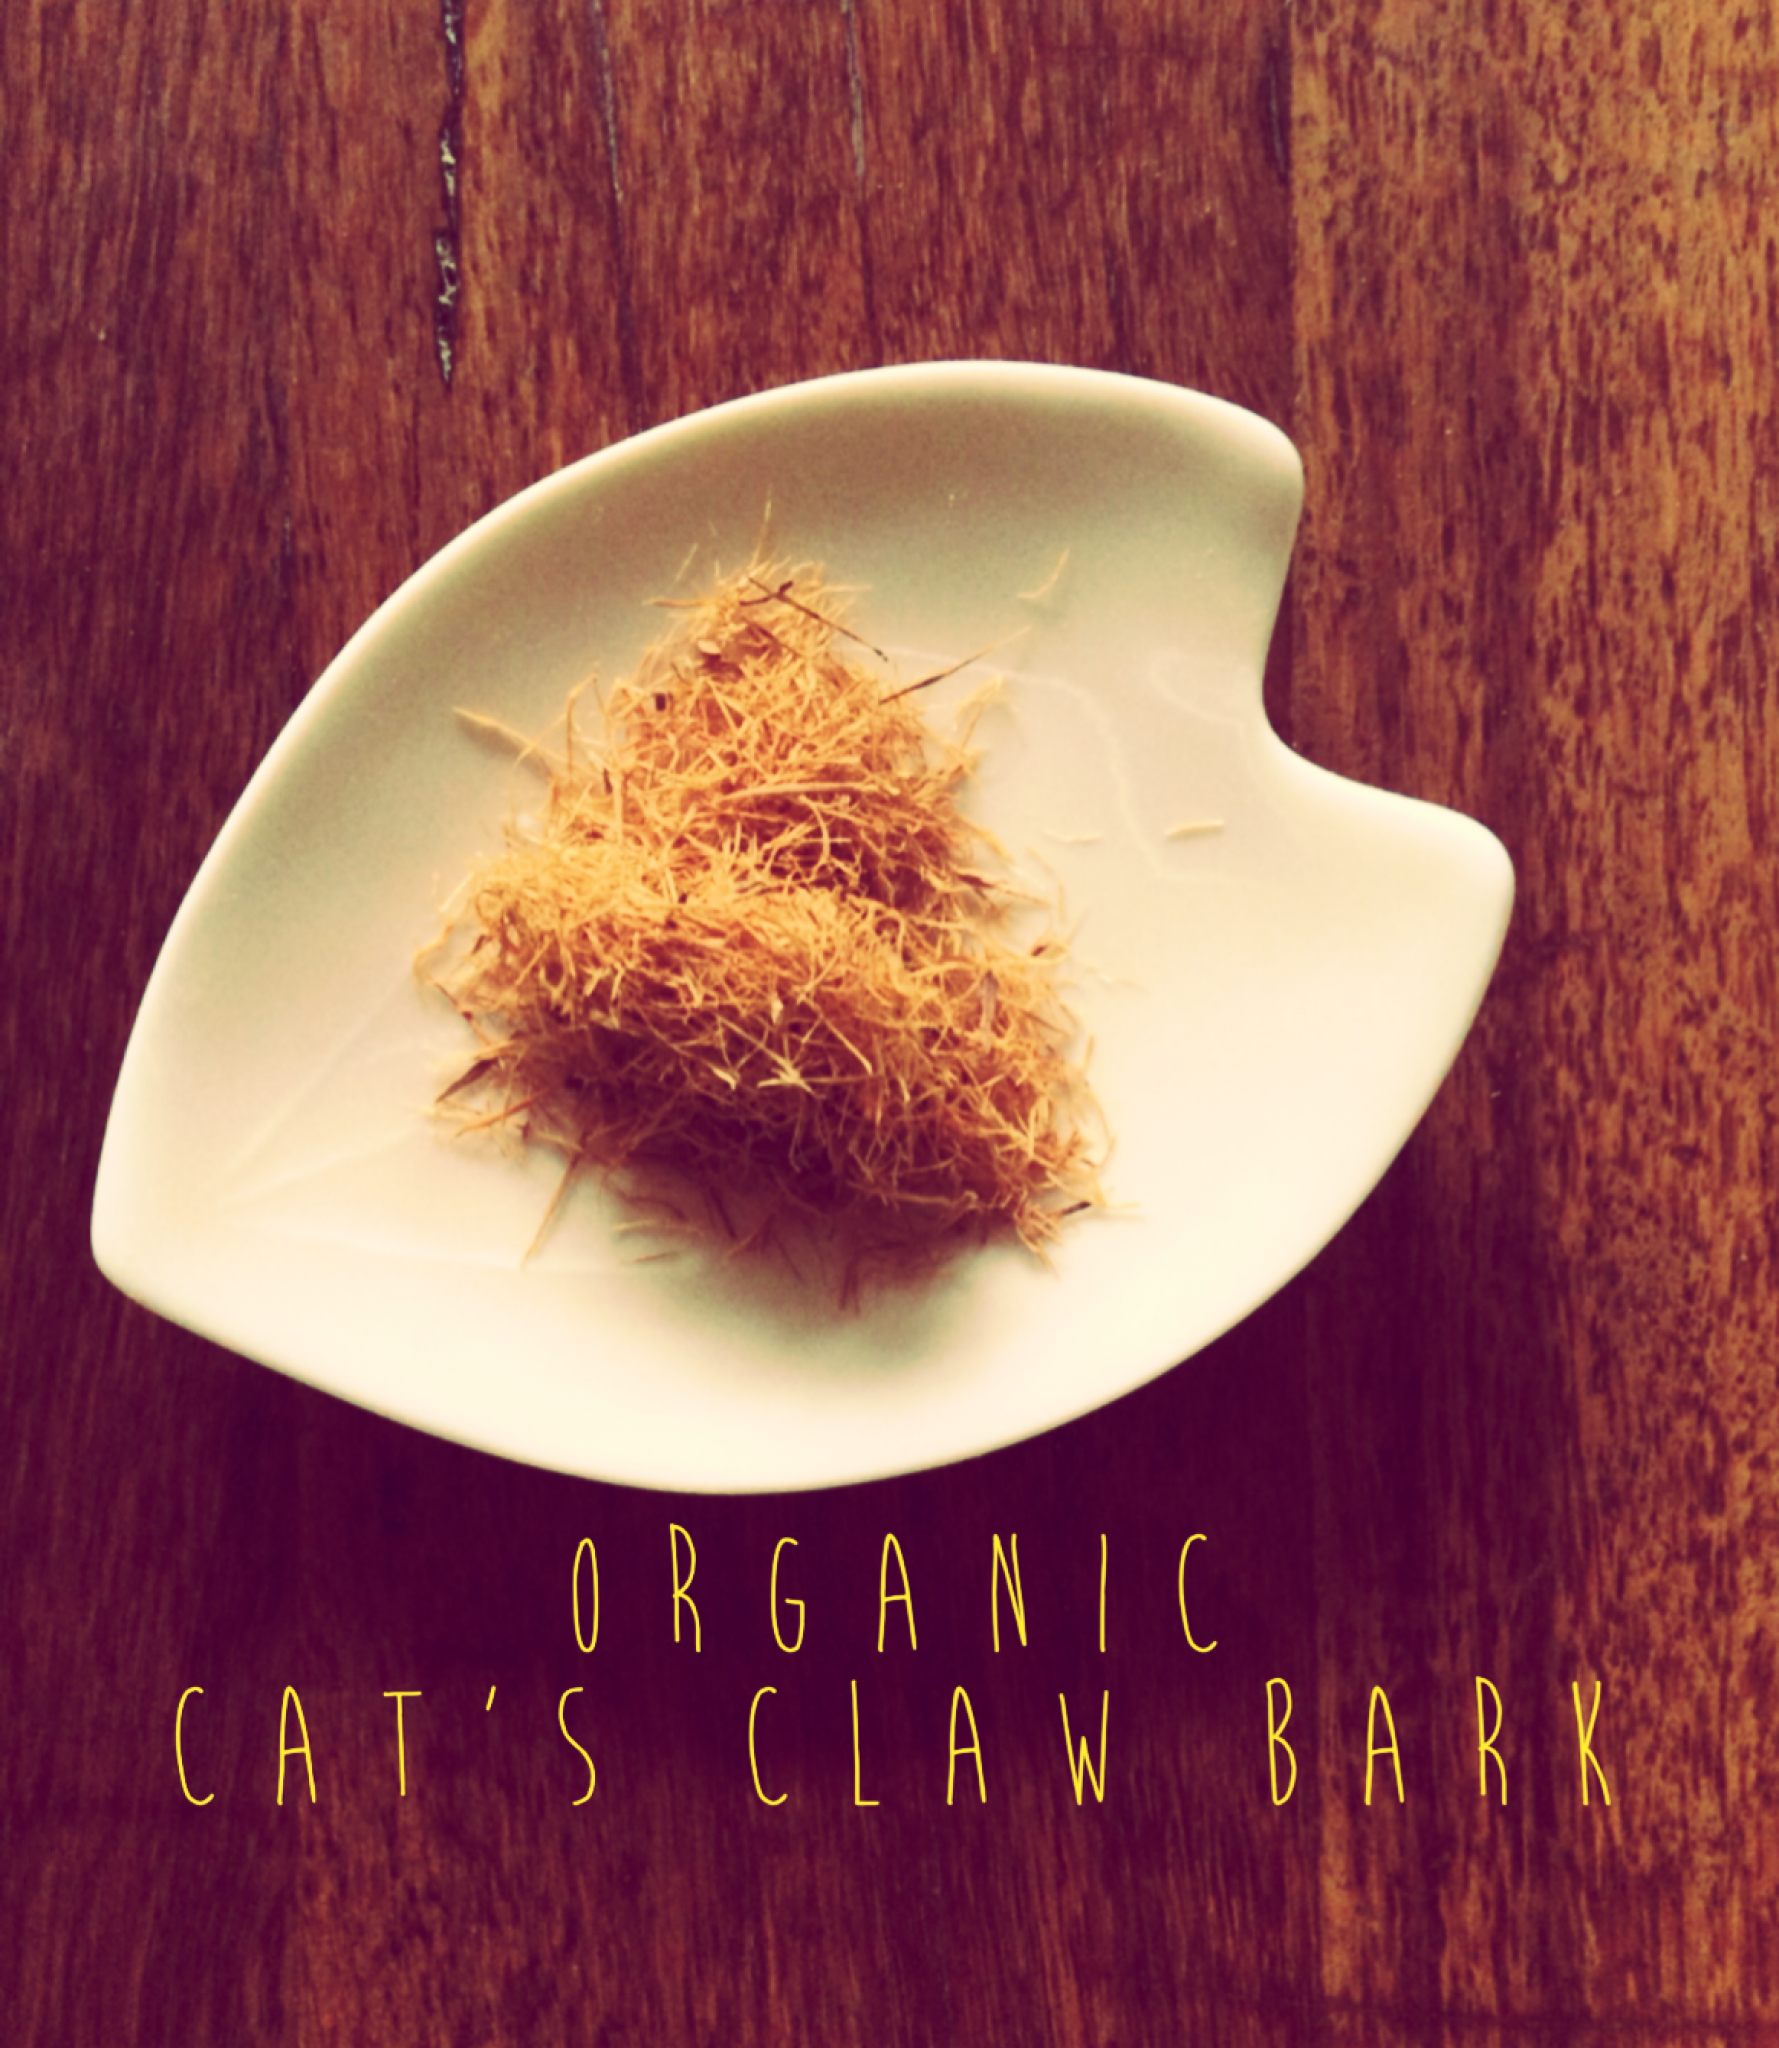 Cat's Claw is an herb that can be very good for pains